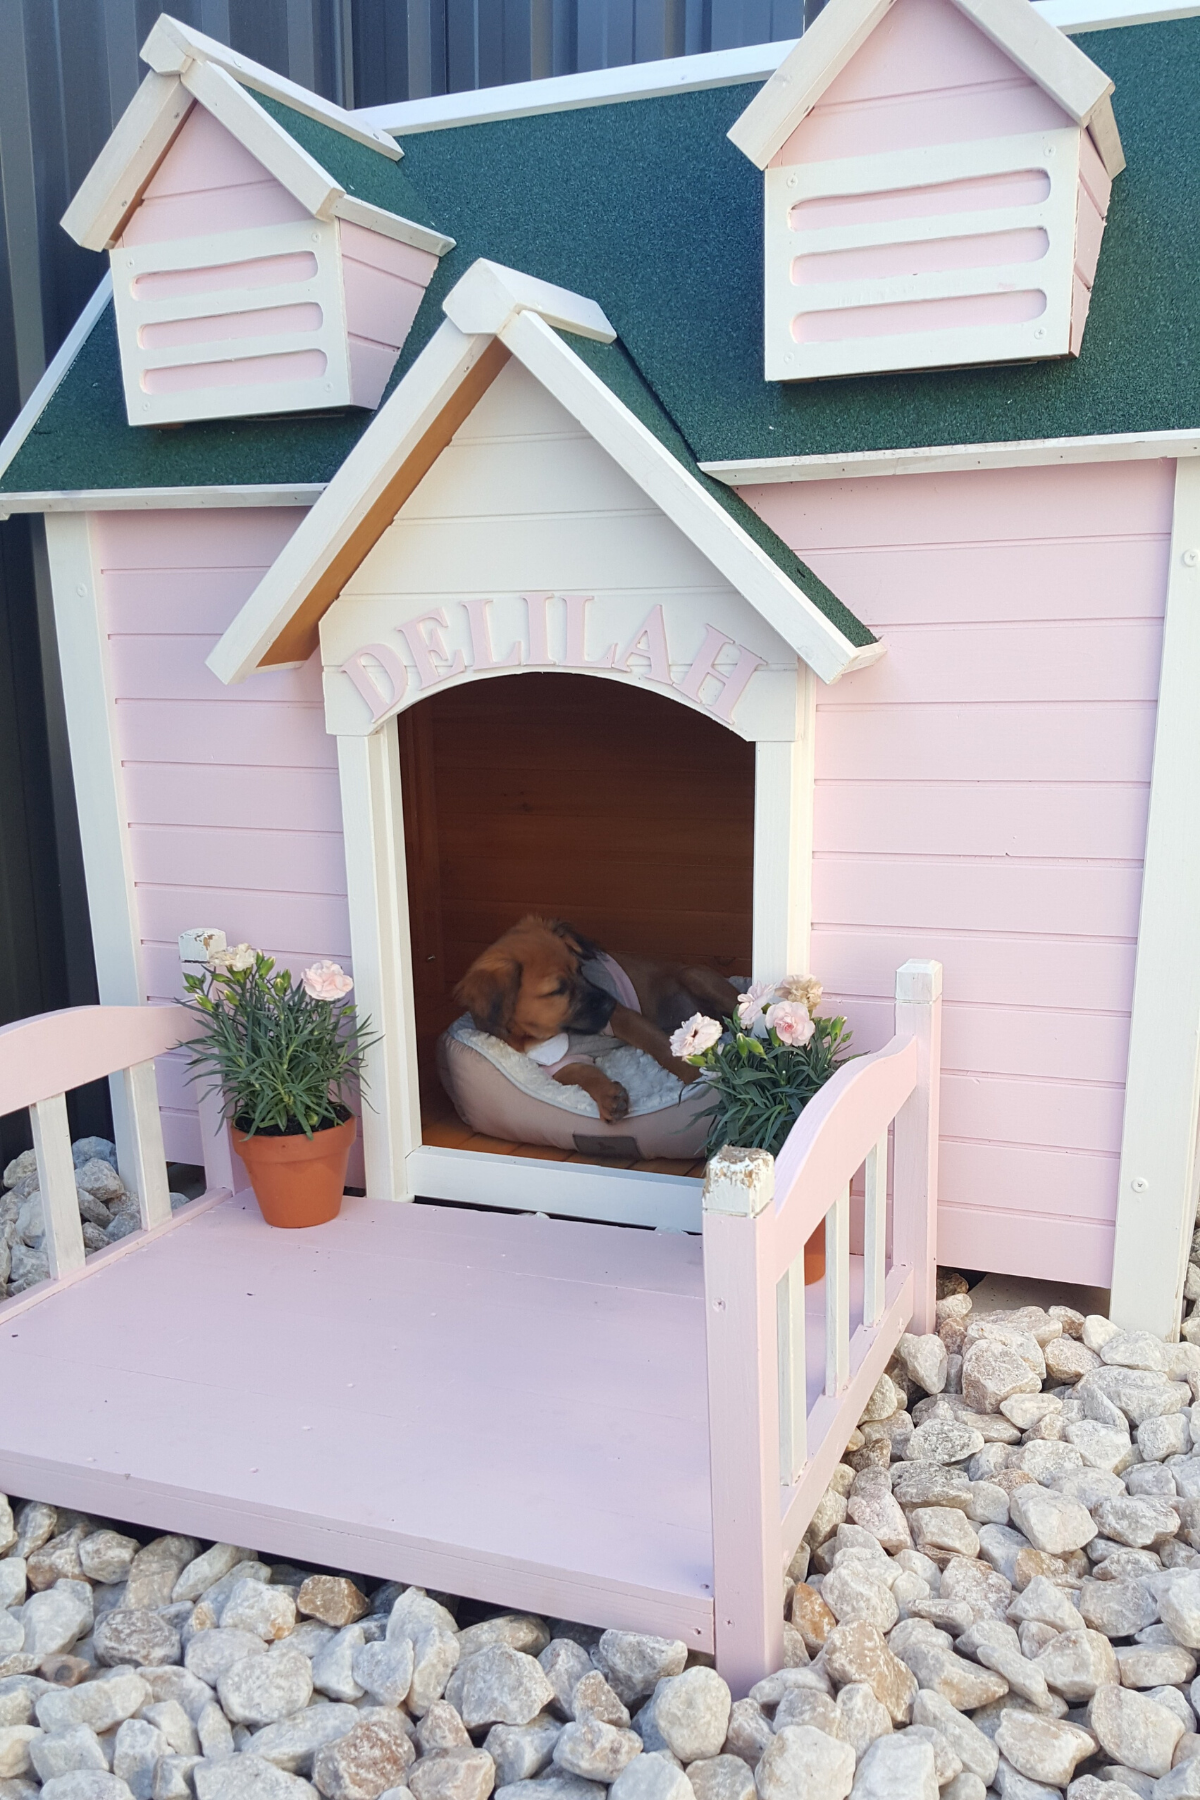 Princess Delilah S Kennel From Great Beginnings Dog House With Porch Dog House Diy Outdoor Dog House [ 1800 x 1200 Pixel ]